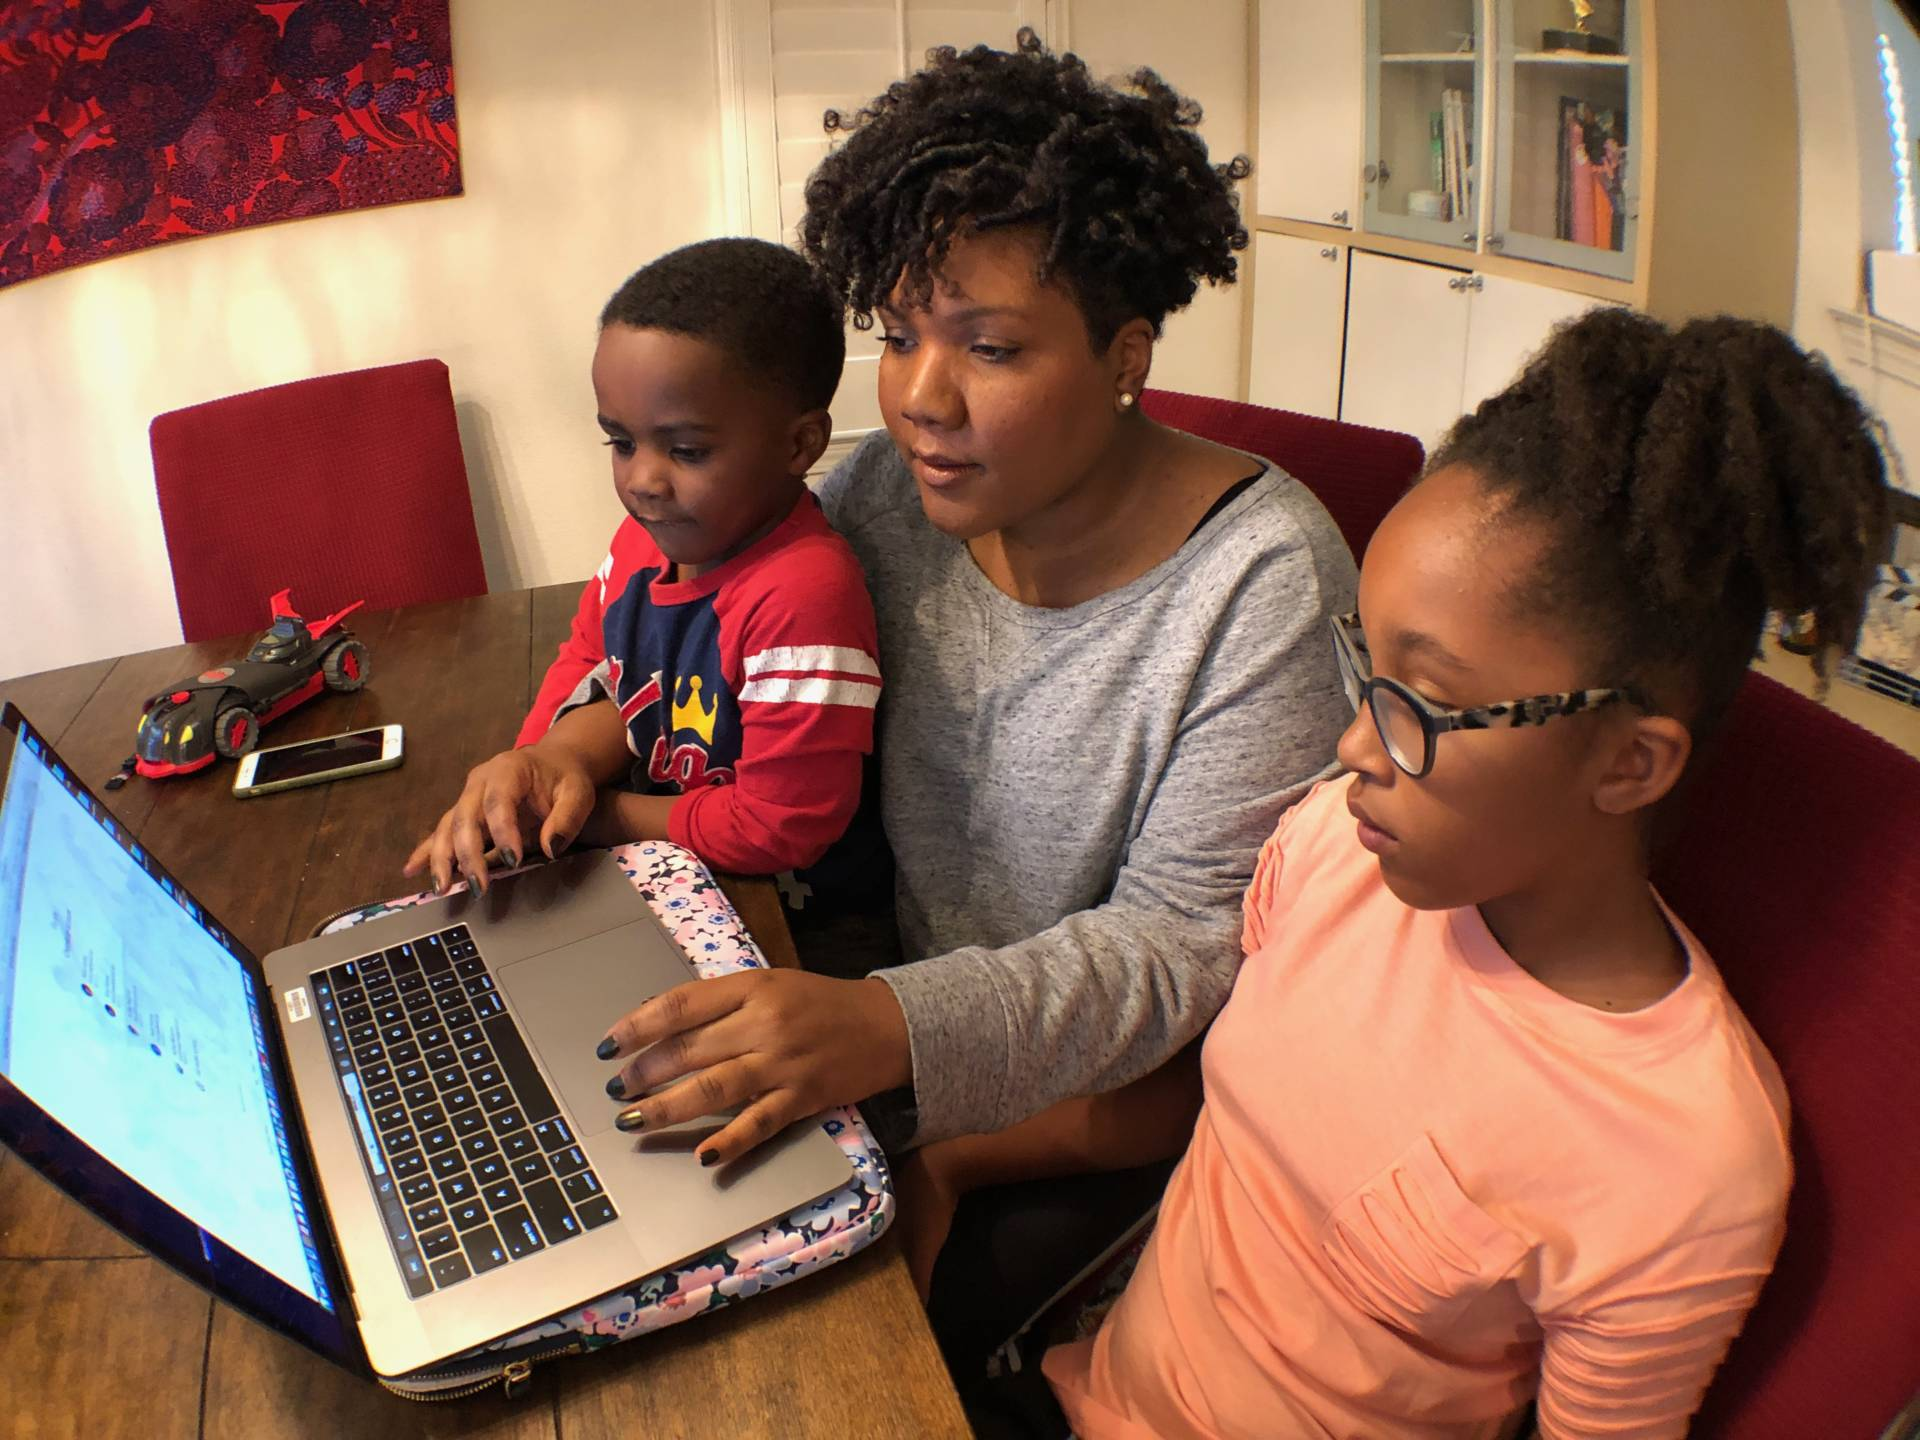 """Tonya Mosley and 11-year-old Audrey check her assignments and work progress through the school portal """"School Loop.""""  Courtesy of Tonya Mosley/KQED"""